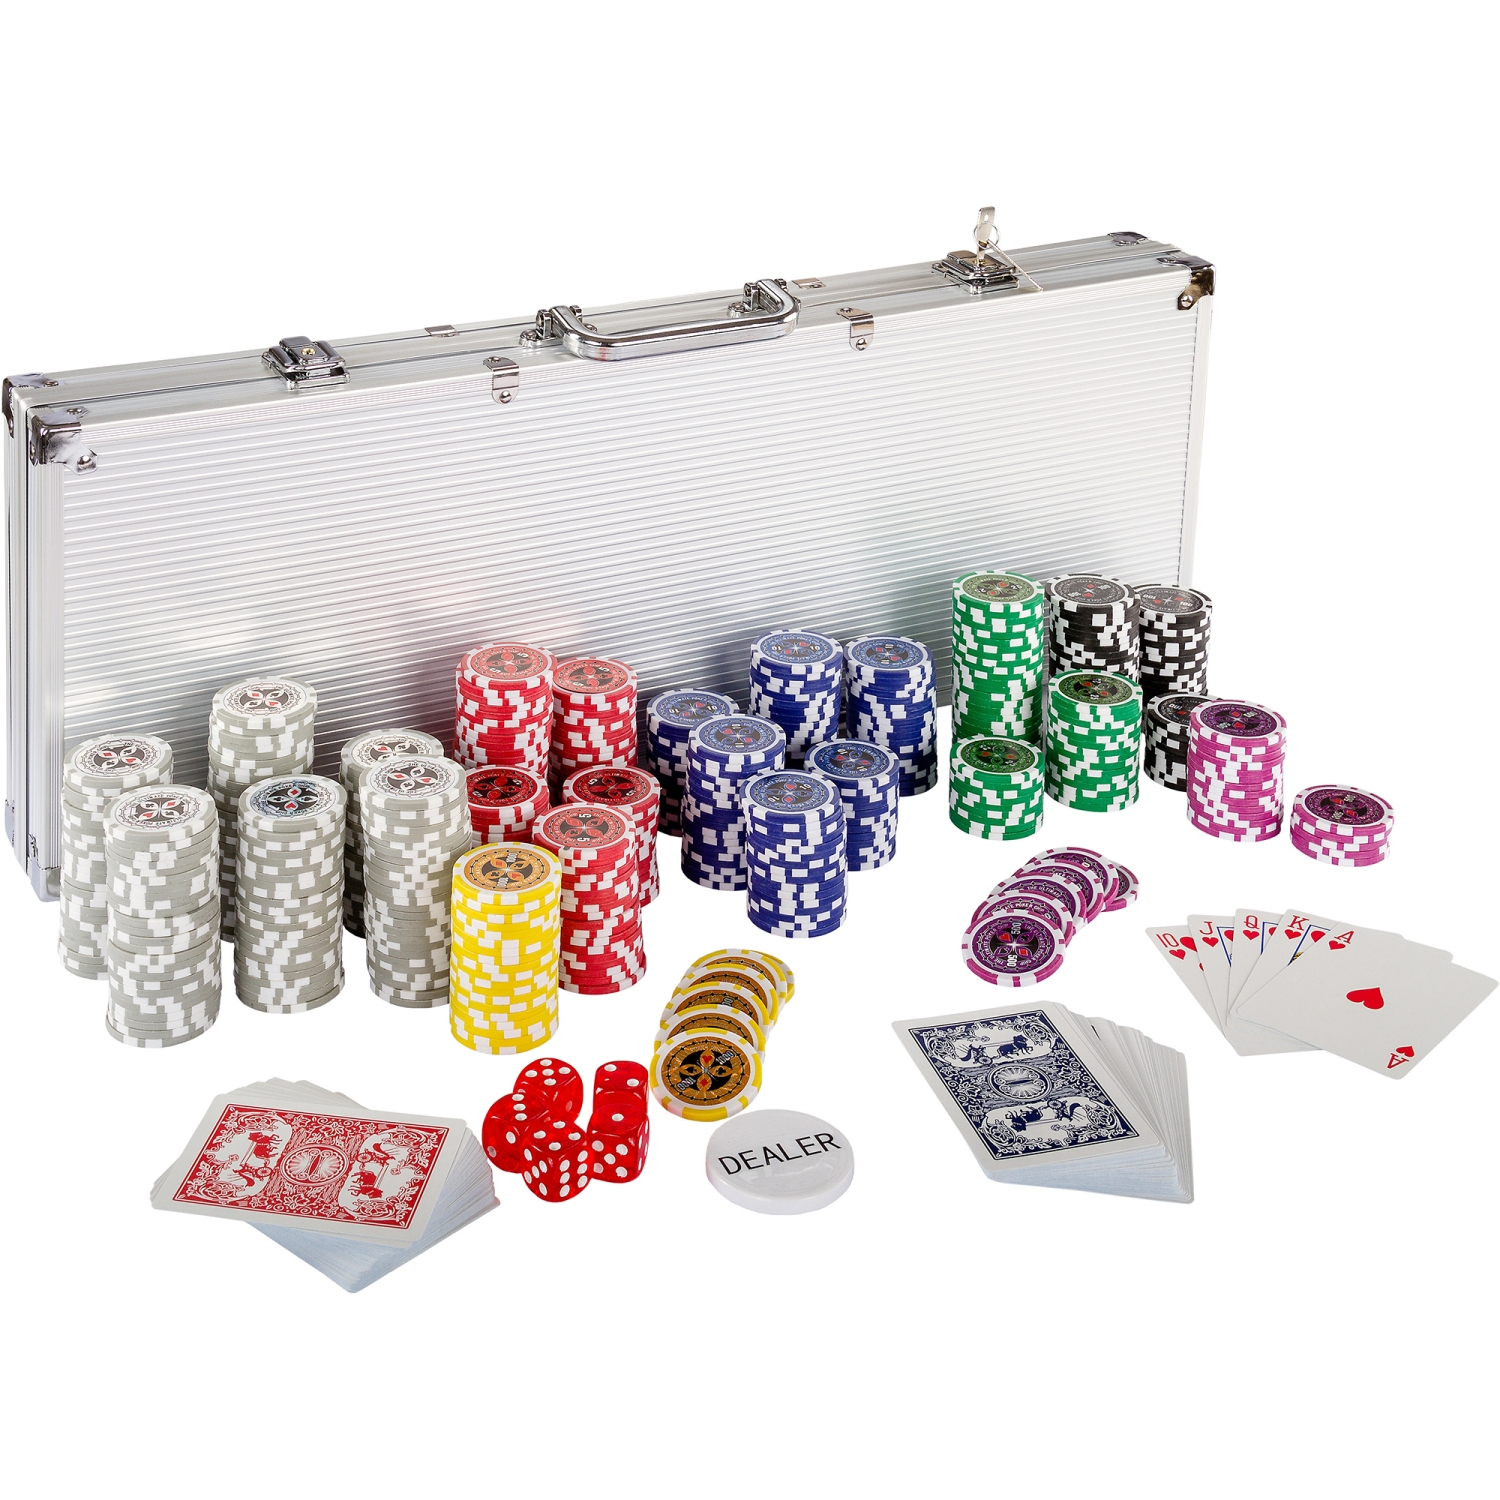 pokerkoffer pokerset poker set laser pokerchips 500 chips alu koffer jetons ebay. Black Bedroom Furniture Sets. Home Design Ideas